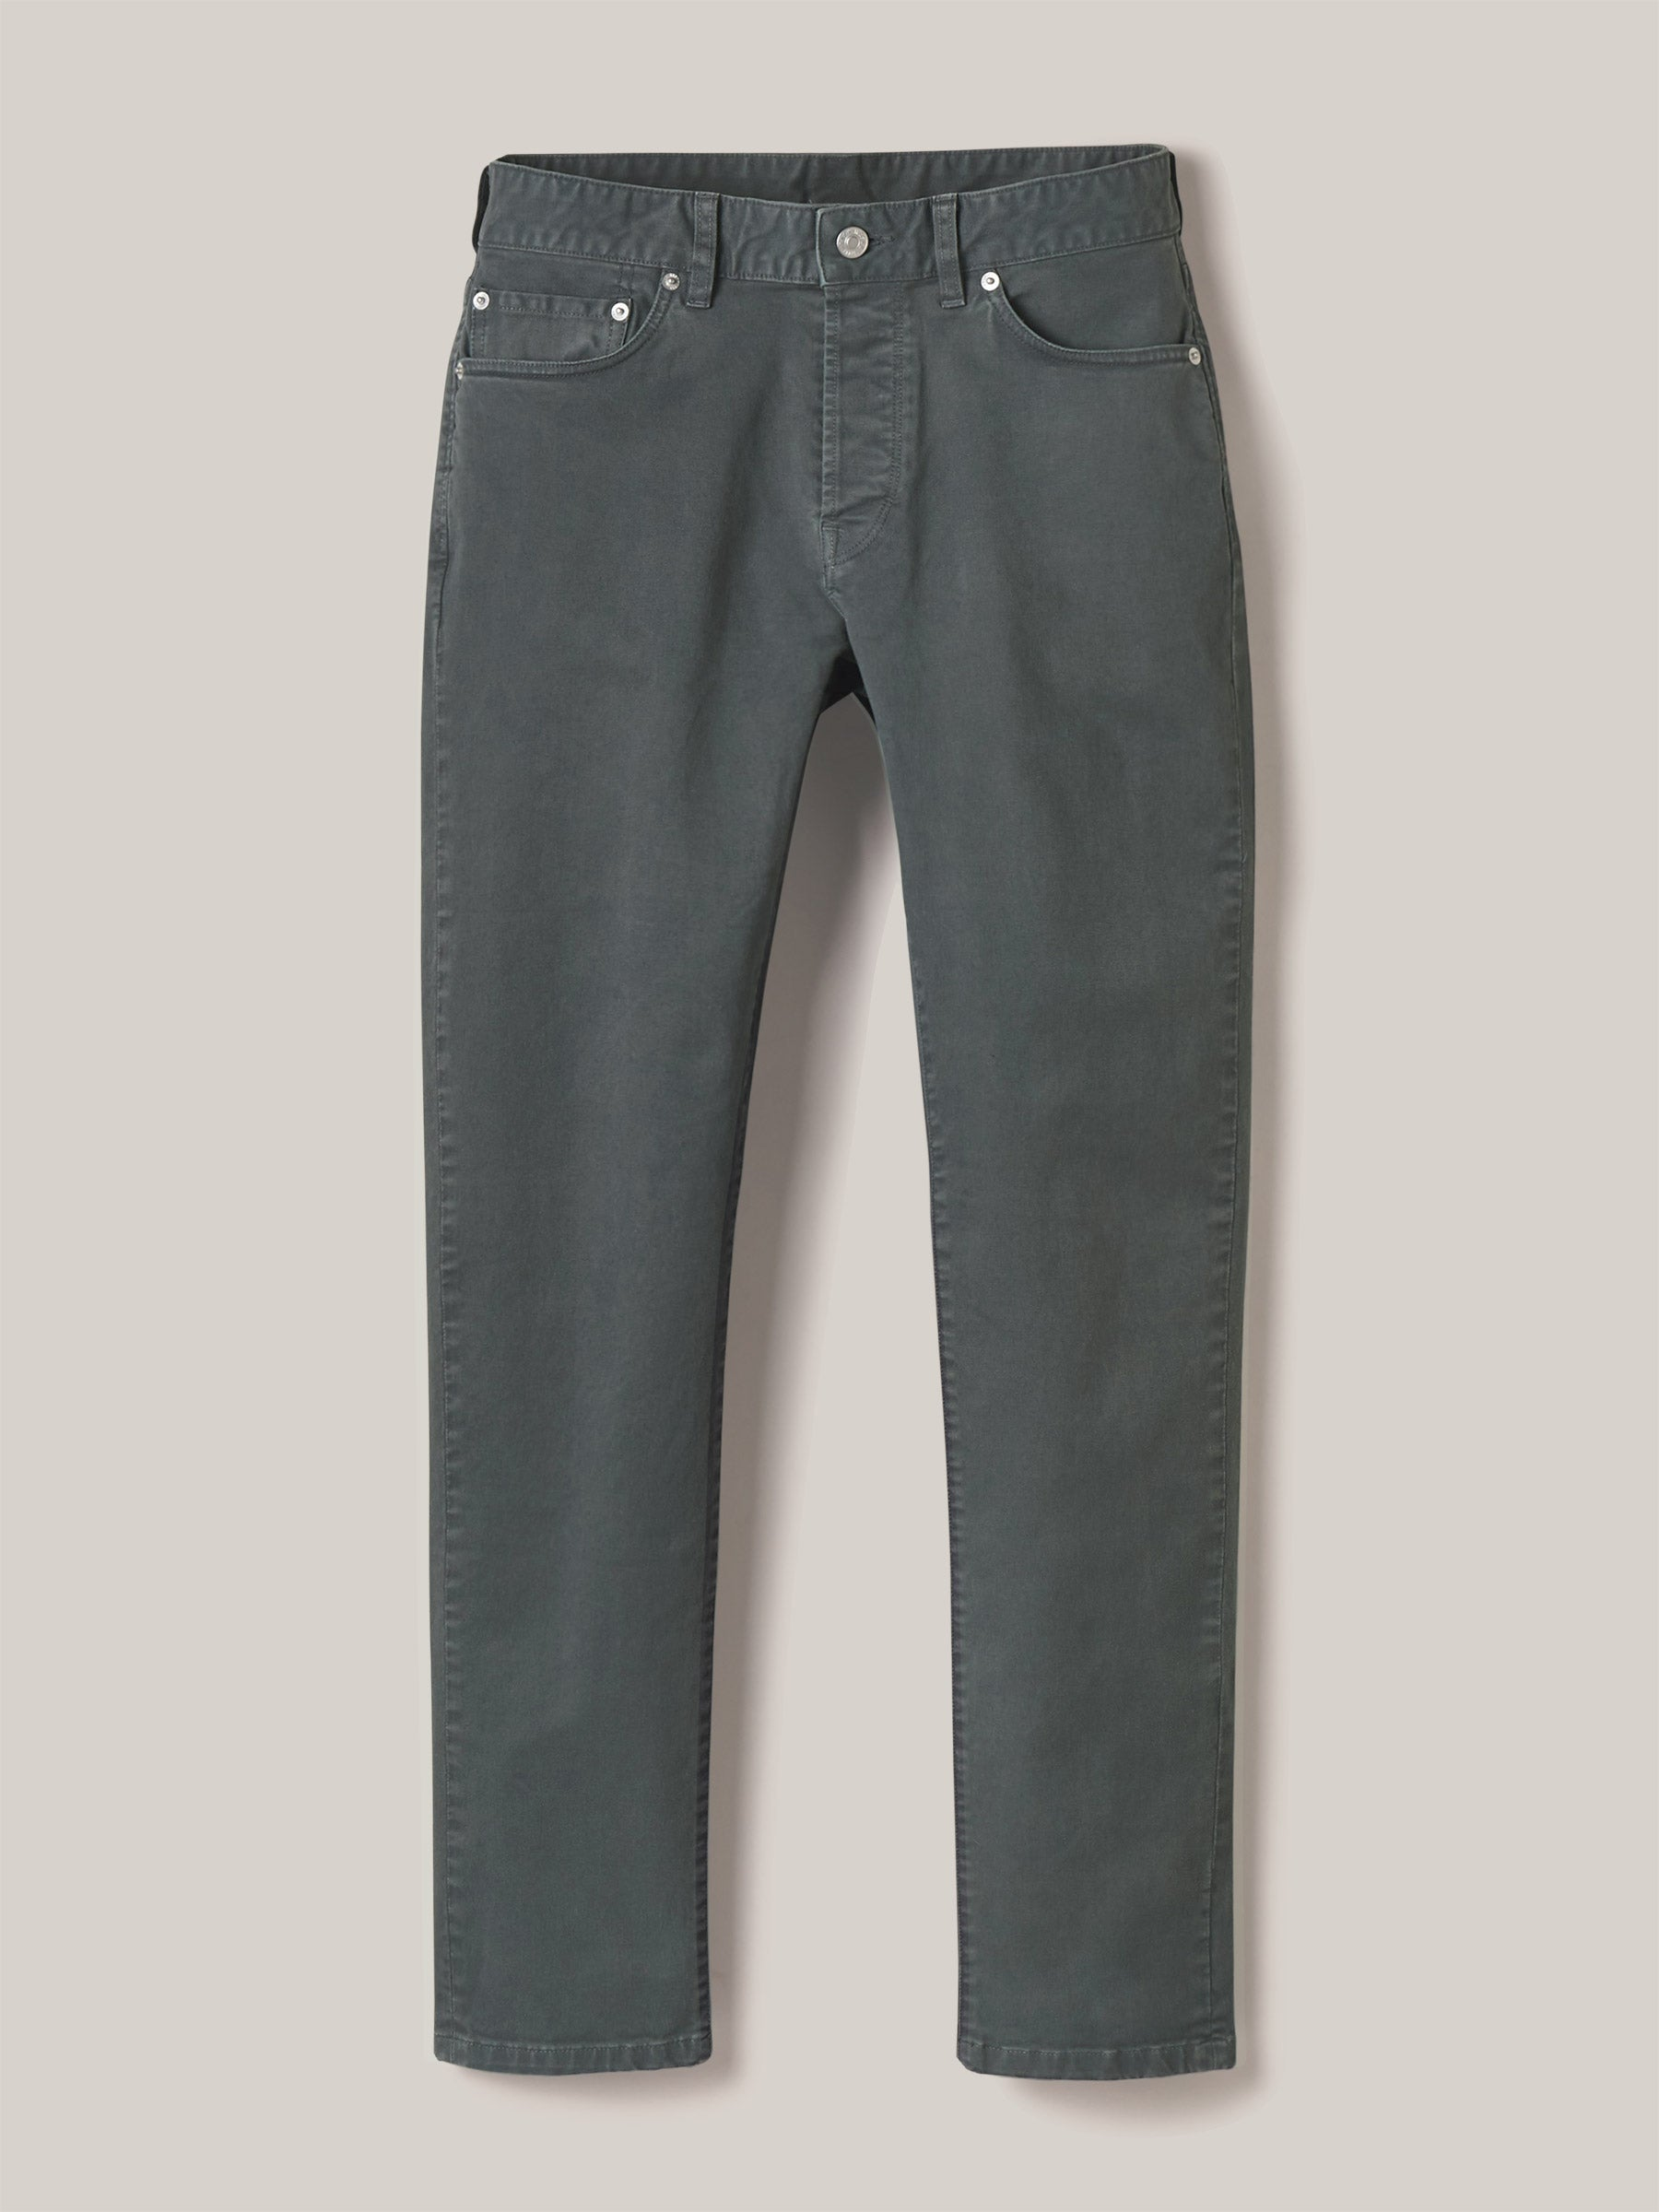 Buck Mason - Slate Harbor Twill Maverick Slim Jean